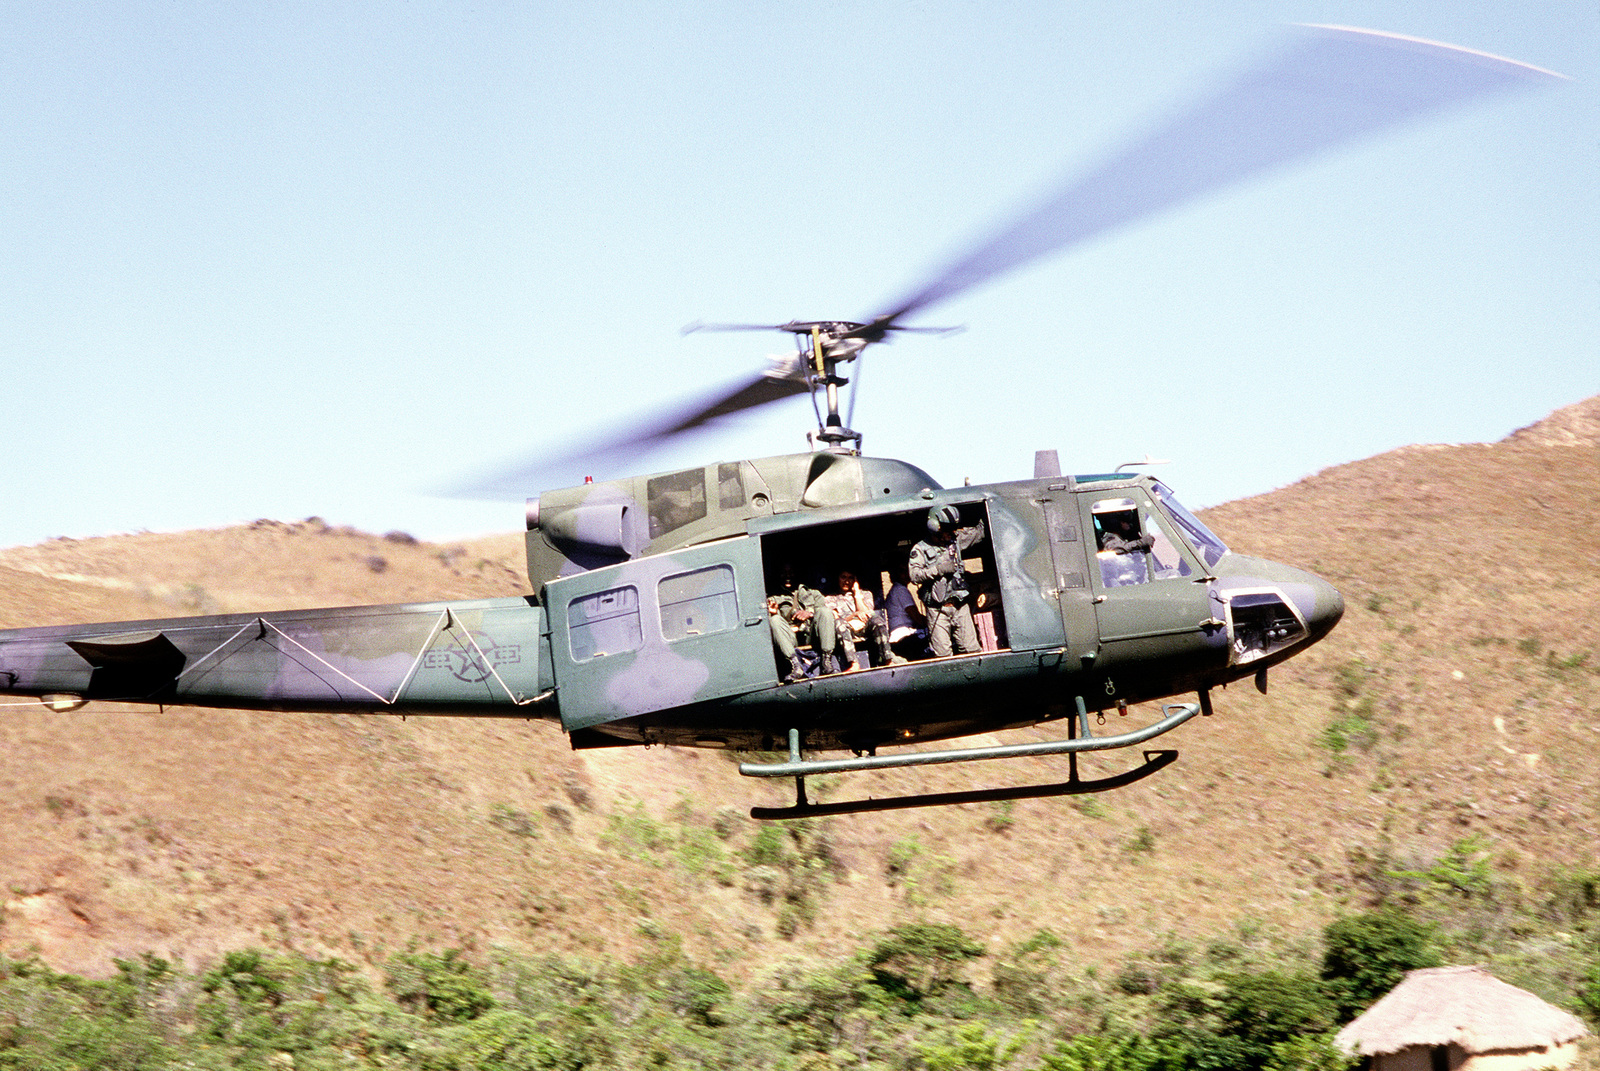 A U.S. Air Force UH-1N Iroquois helicopter transports personnel from Buenos Aires to Guayabito, Panama during a humanitarian aid operation for impoverished Panamanians